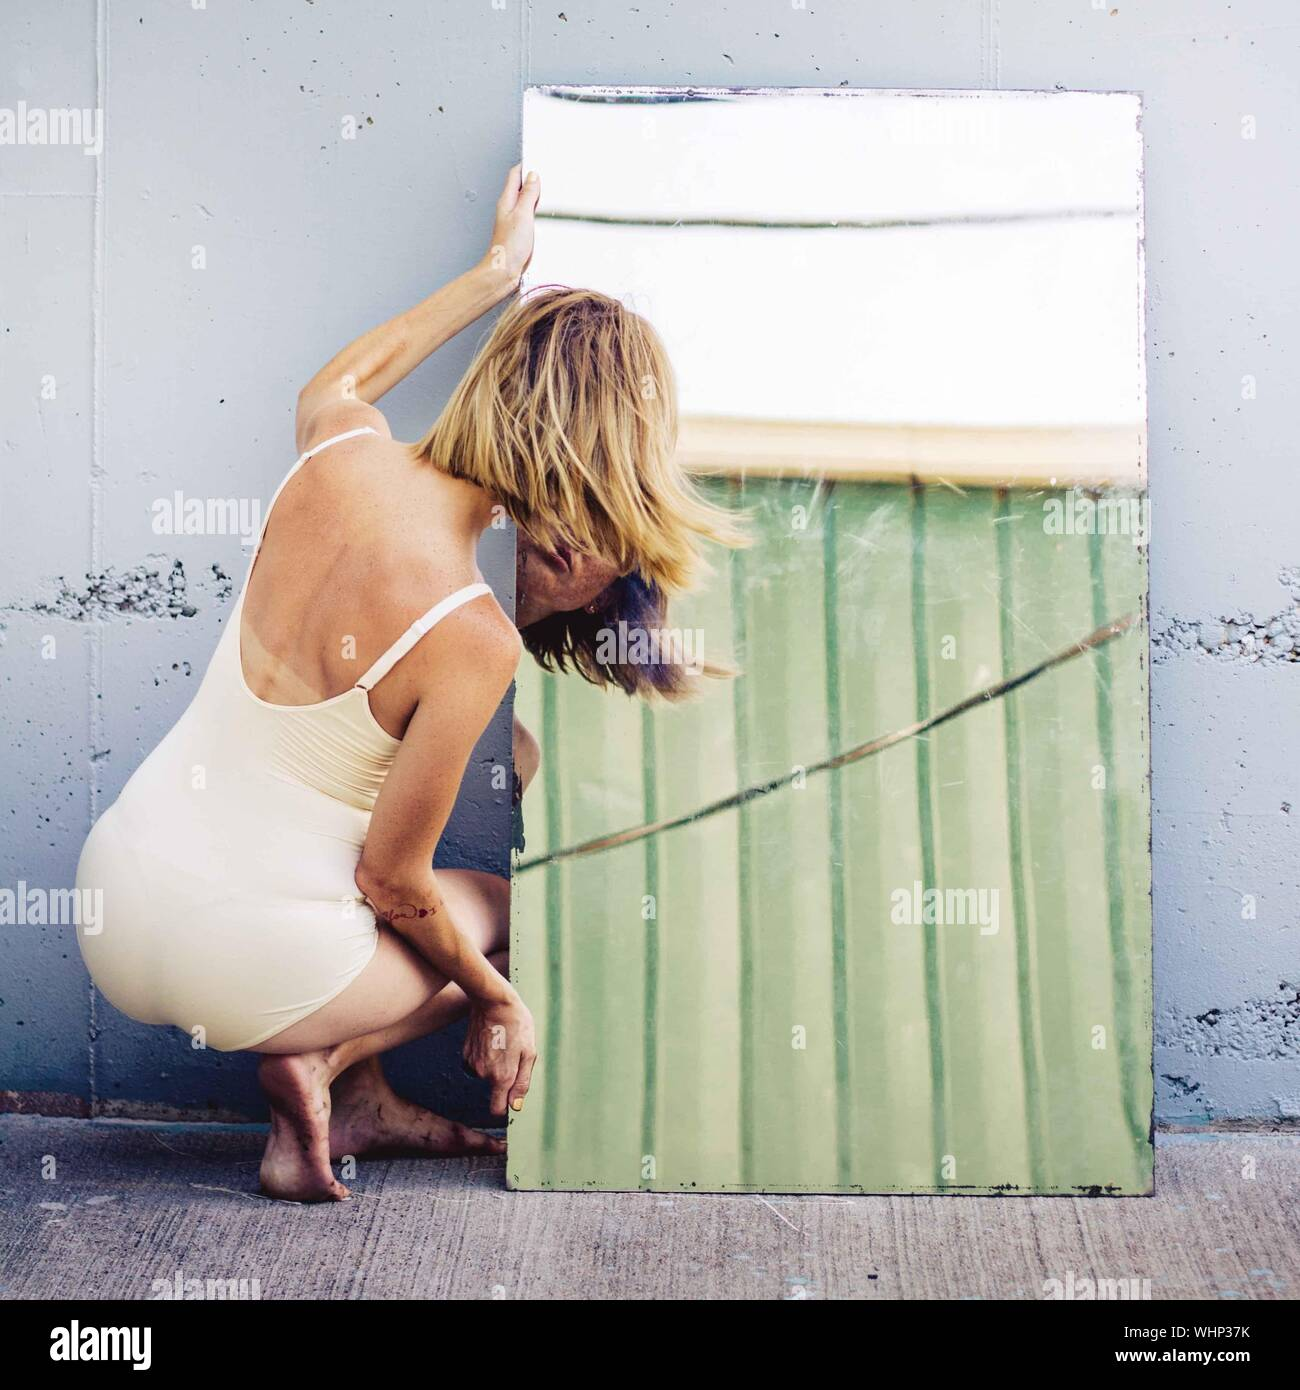 Rear View Of Woman Looking At Mirror Against Wall Stock Photo